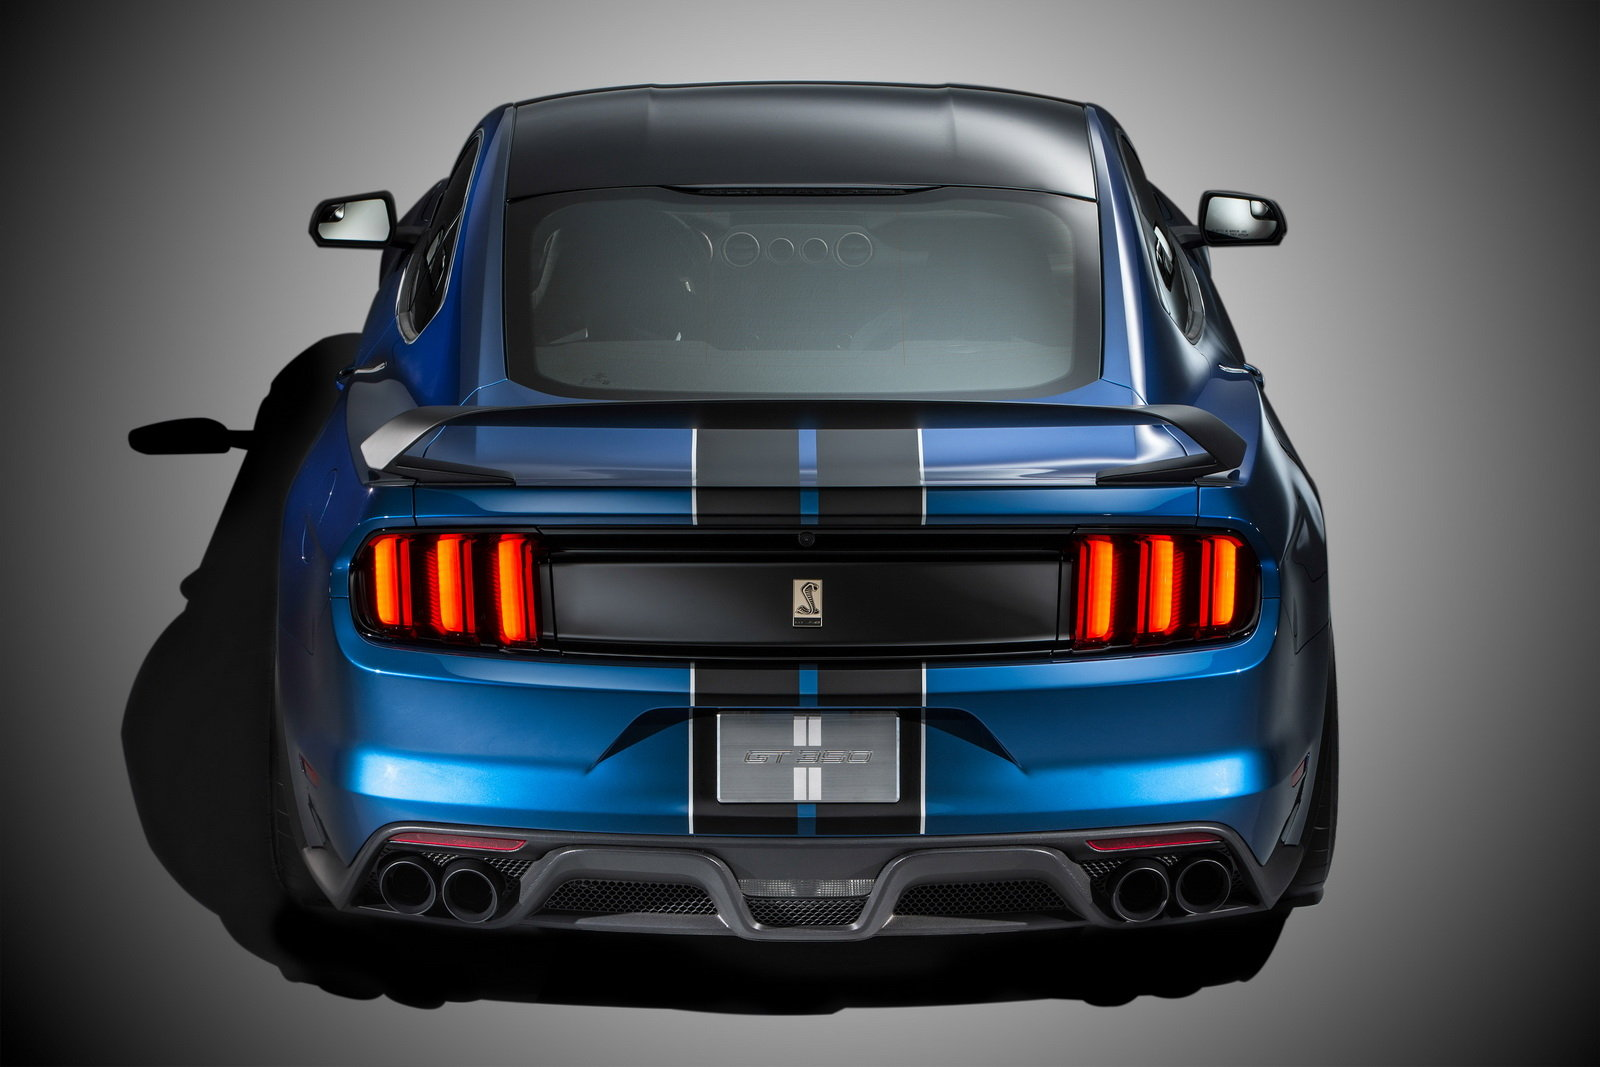 2016 Ford Mustang Shelby Gt350r Rear Exterior (Photo 46 of 47)